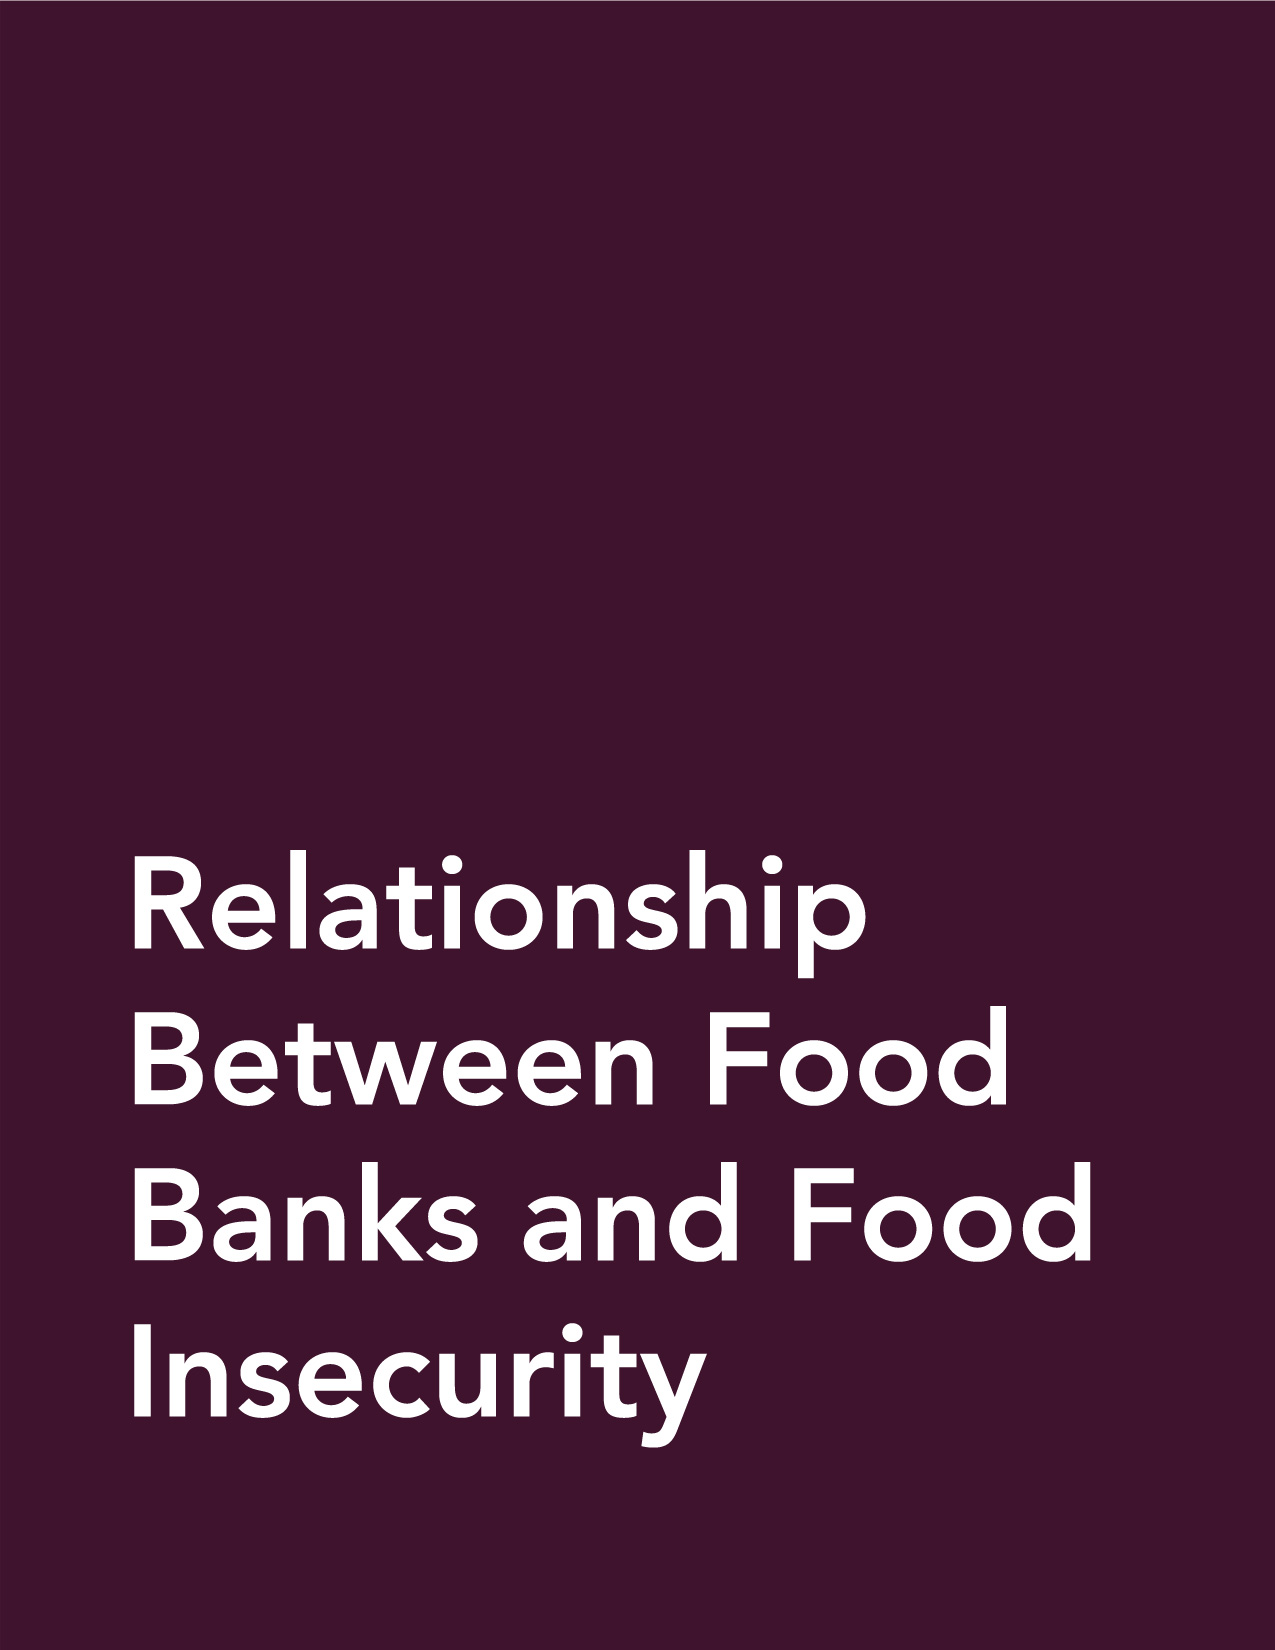 Fact Sheet: Relation Between Food Banks and Food Insecurity